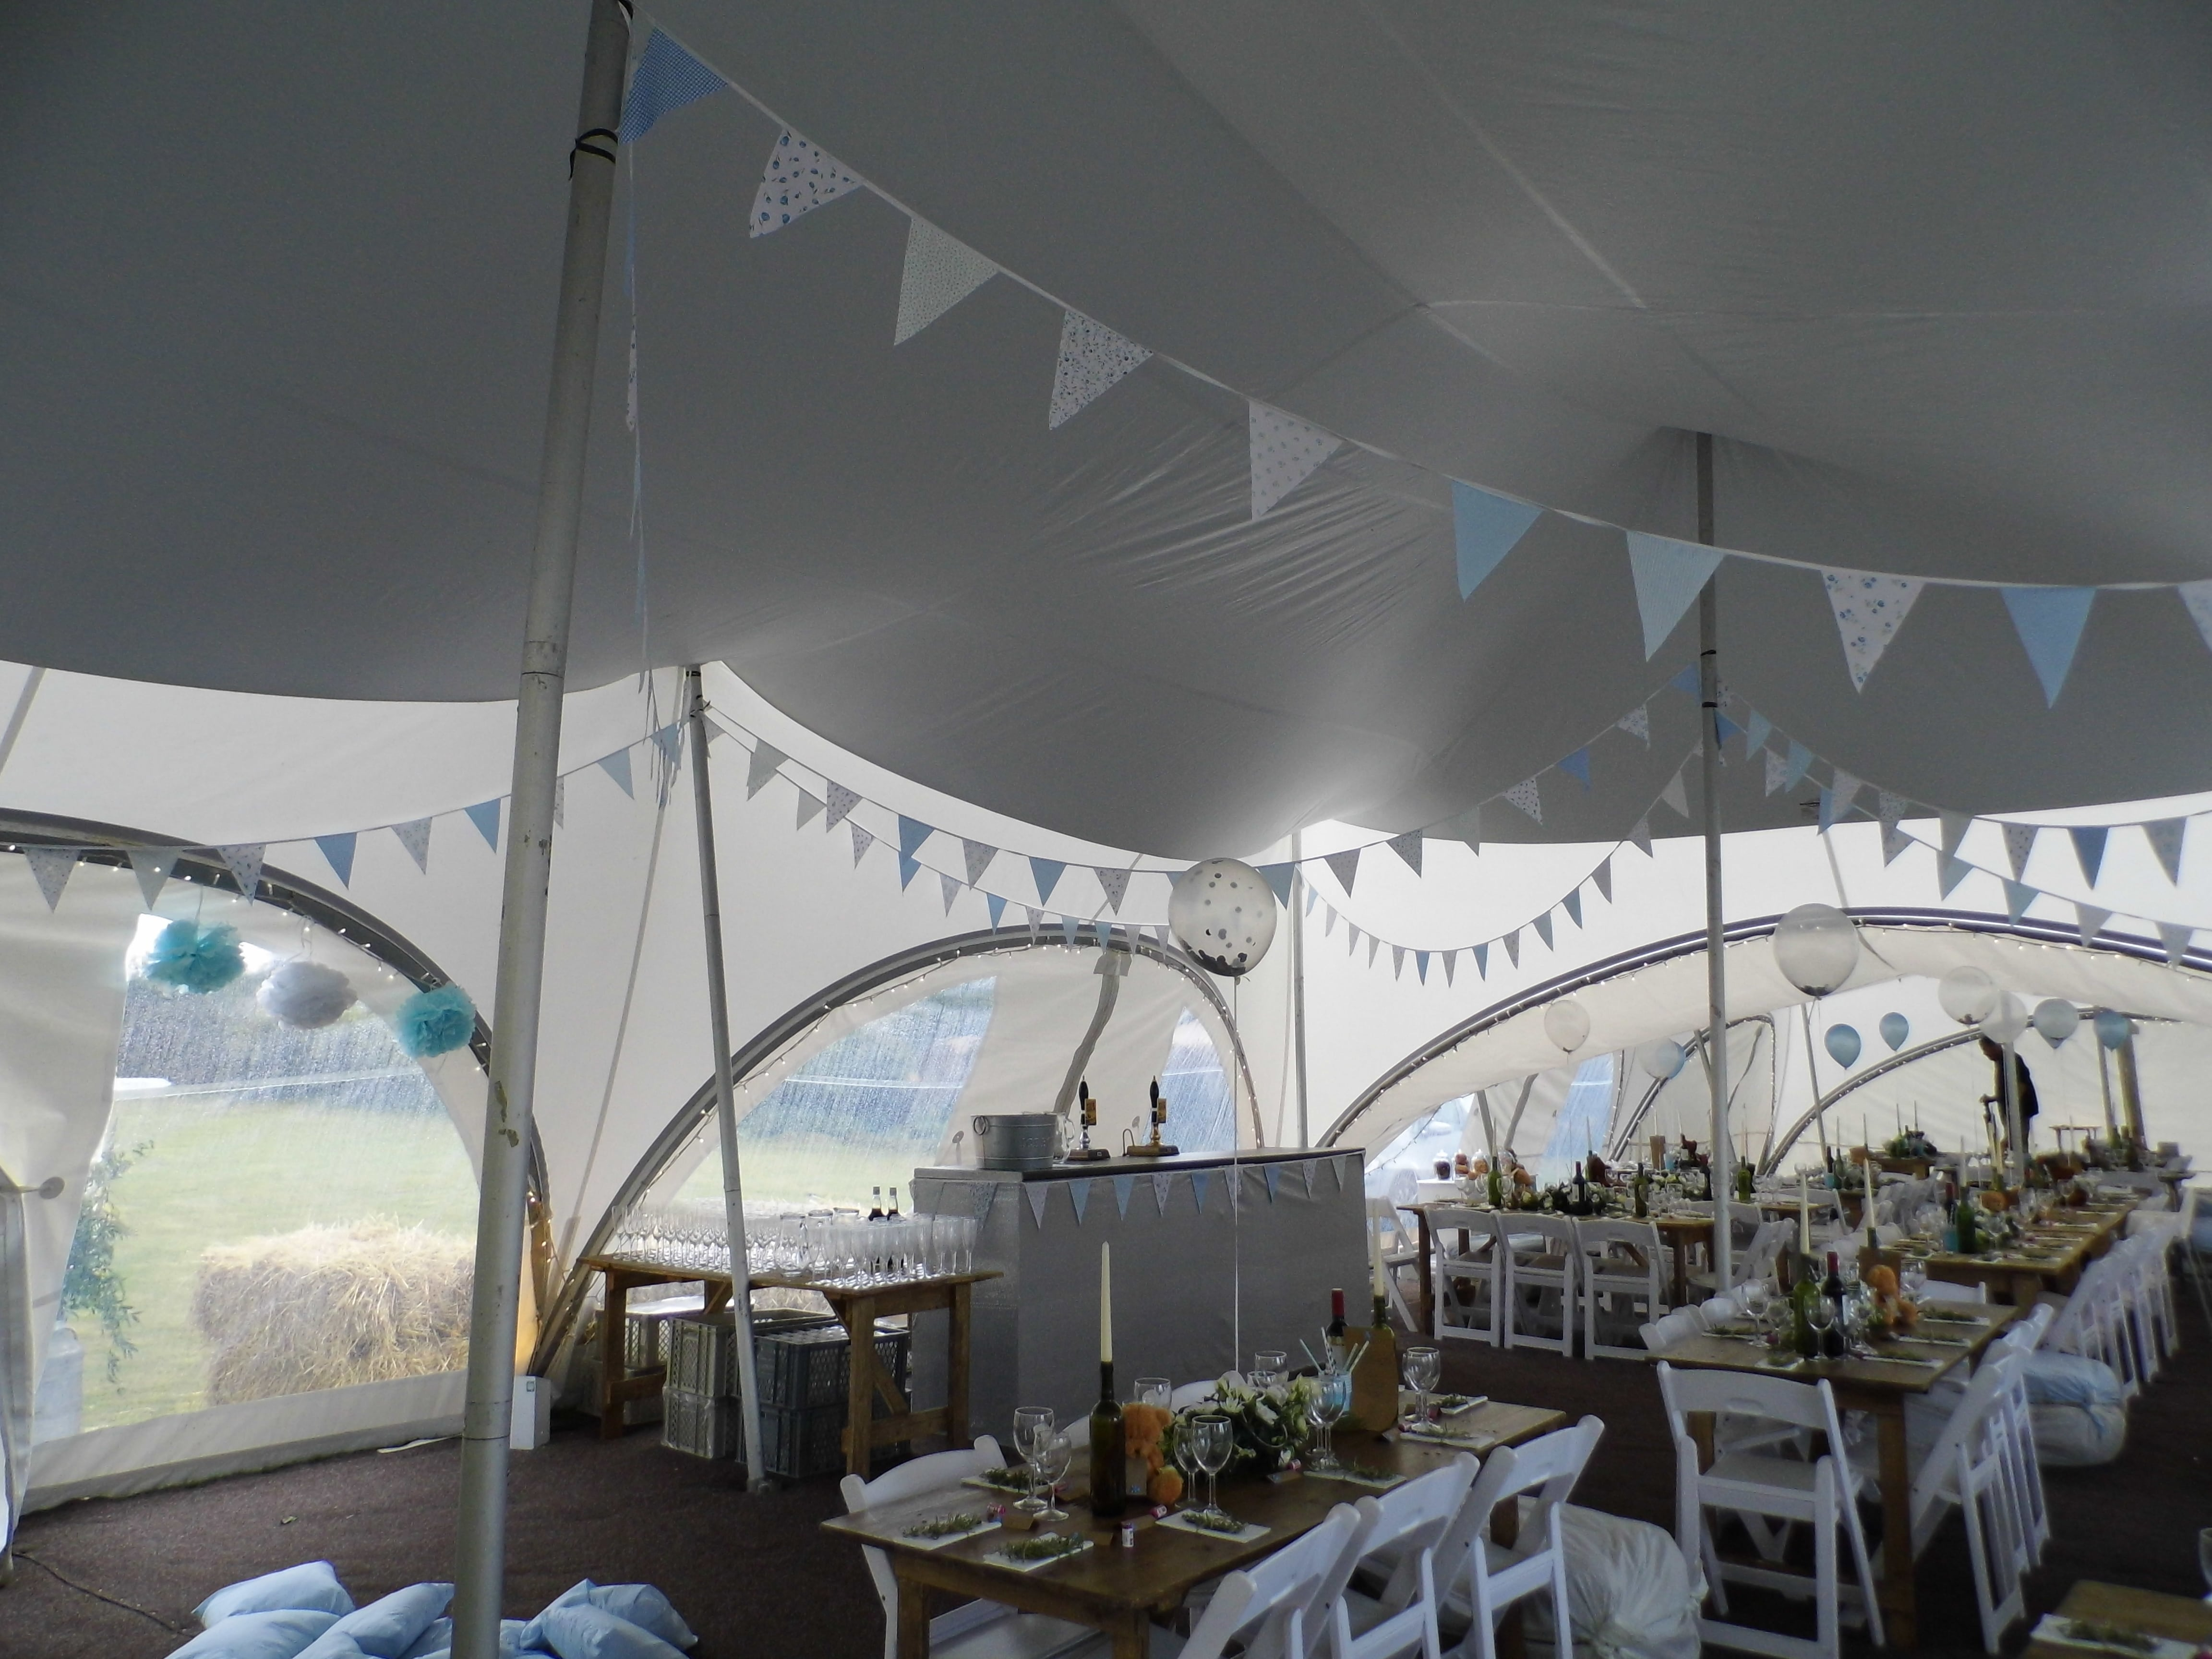 blue and white wedding theme in a marquee